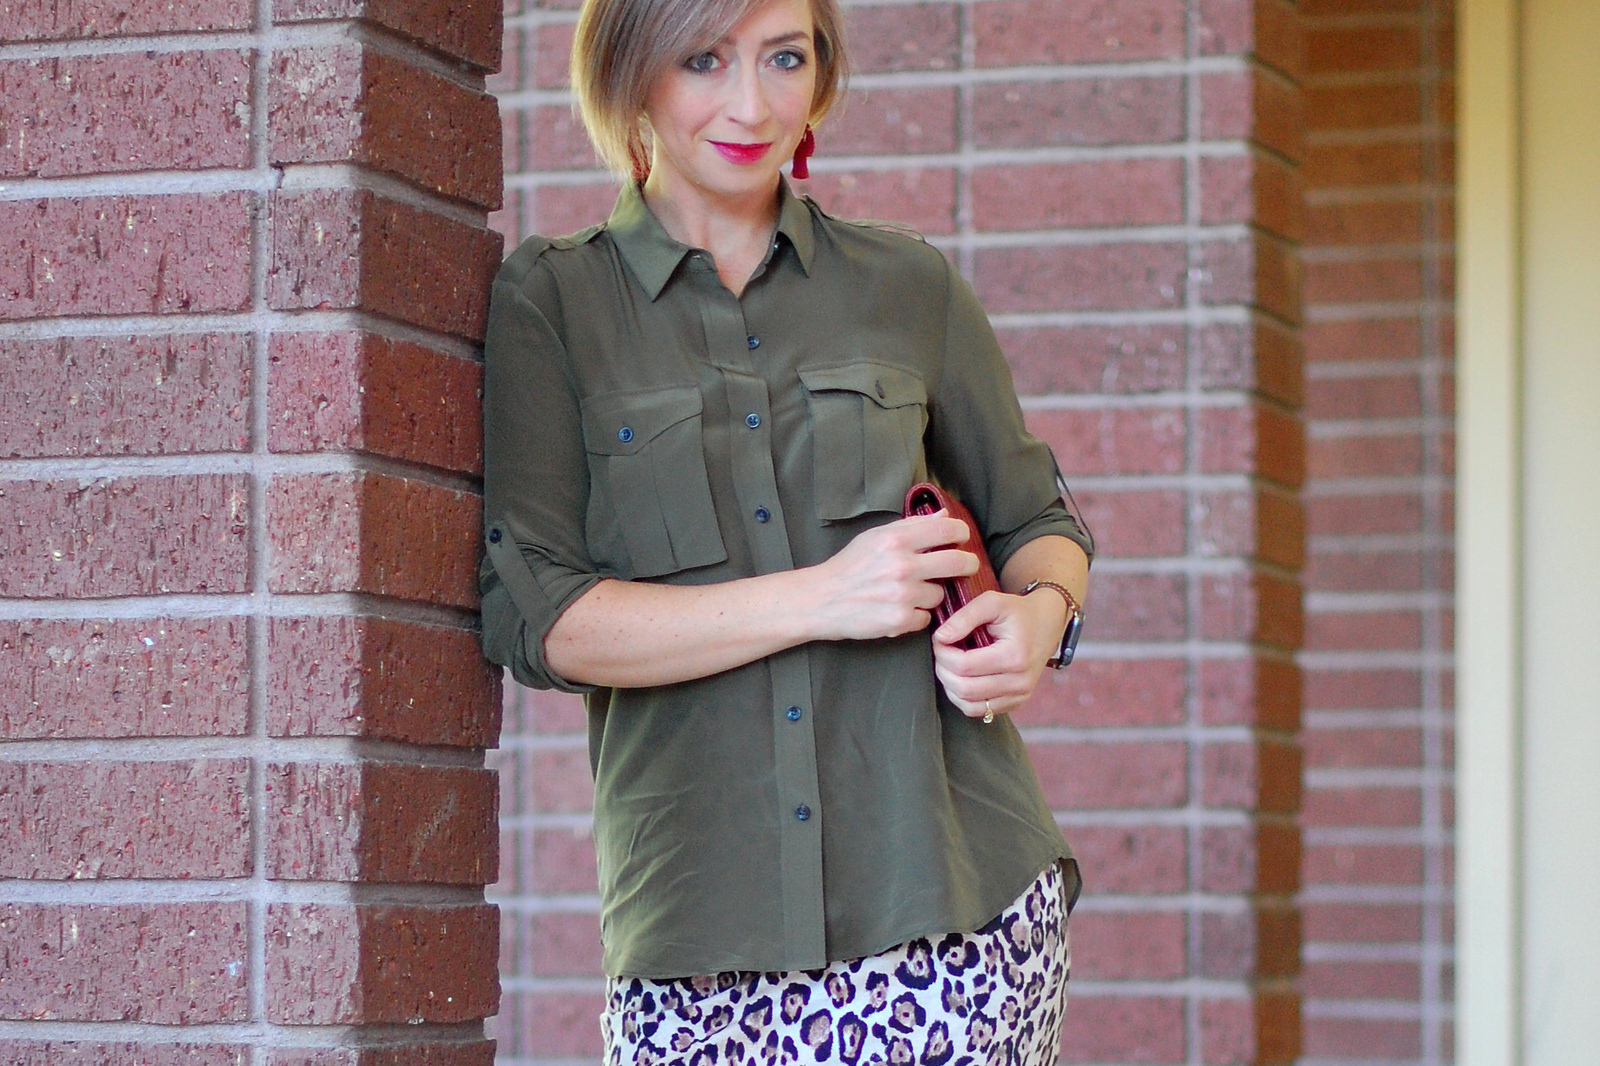 silk blouse leopard pencil skirt outfit ootd whatiwore2day